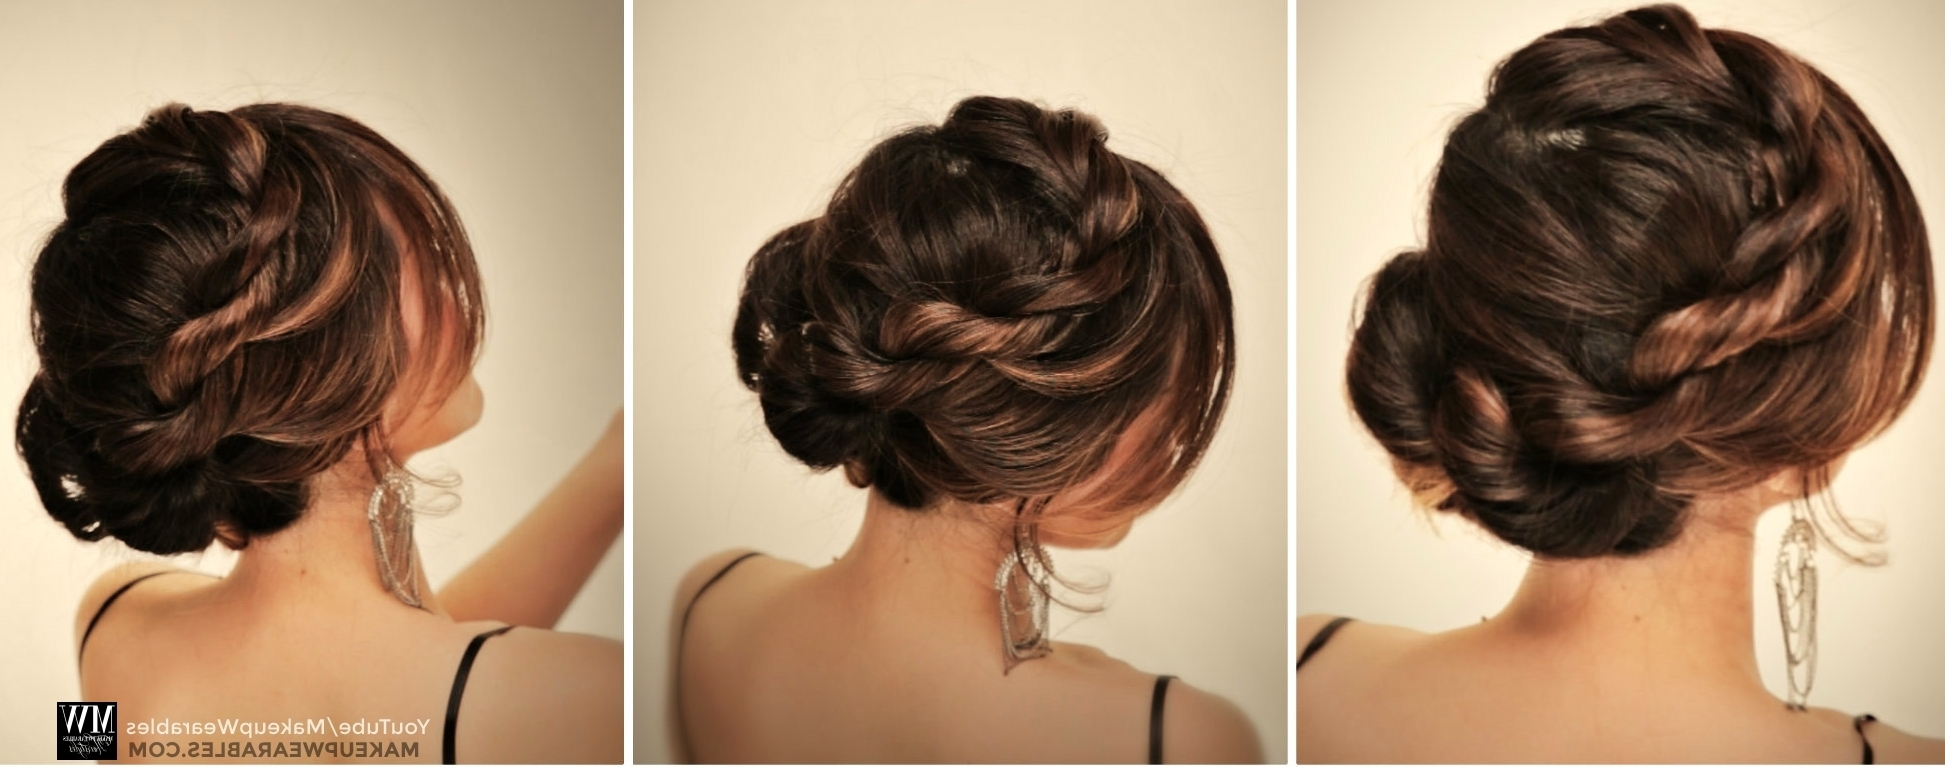 How To: 5 Amazingly Cute + Easy Hairstyles With A Simple Twist Within Easy To Do Updo Hairstyles For Long Hair (View 9 of 15)